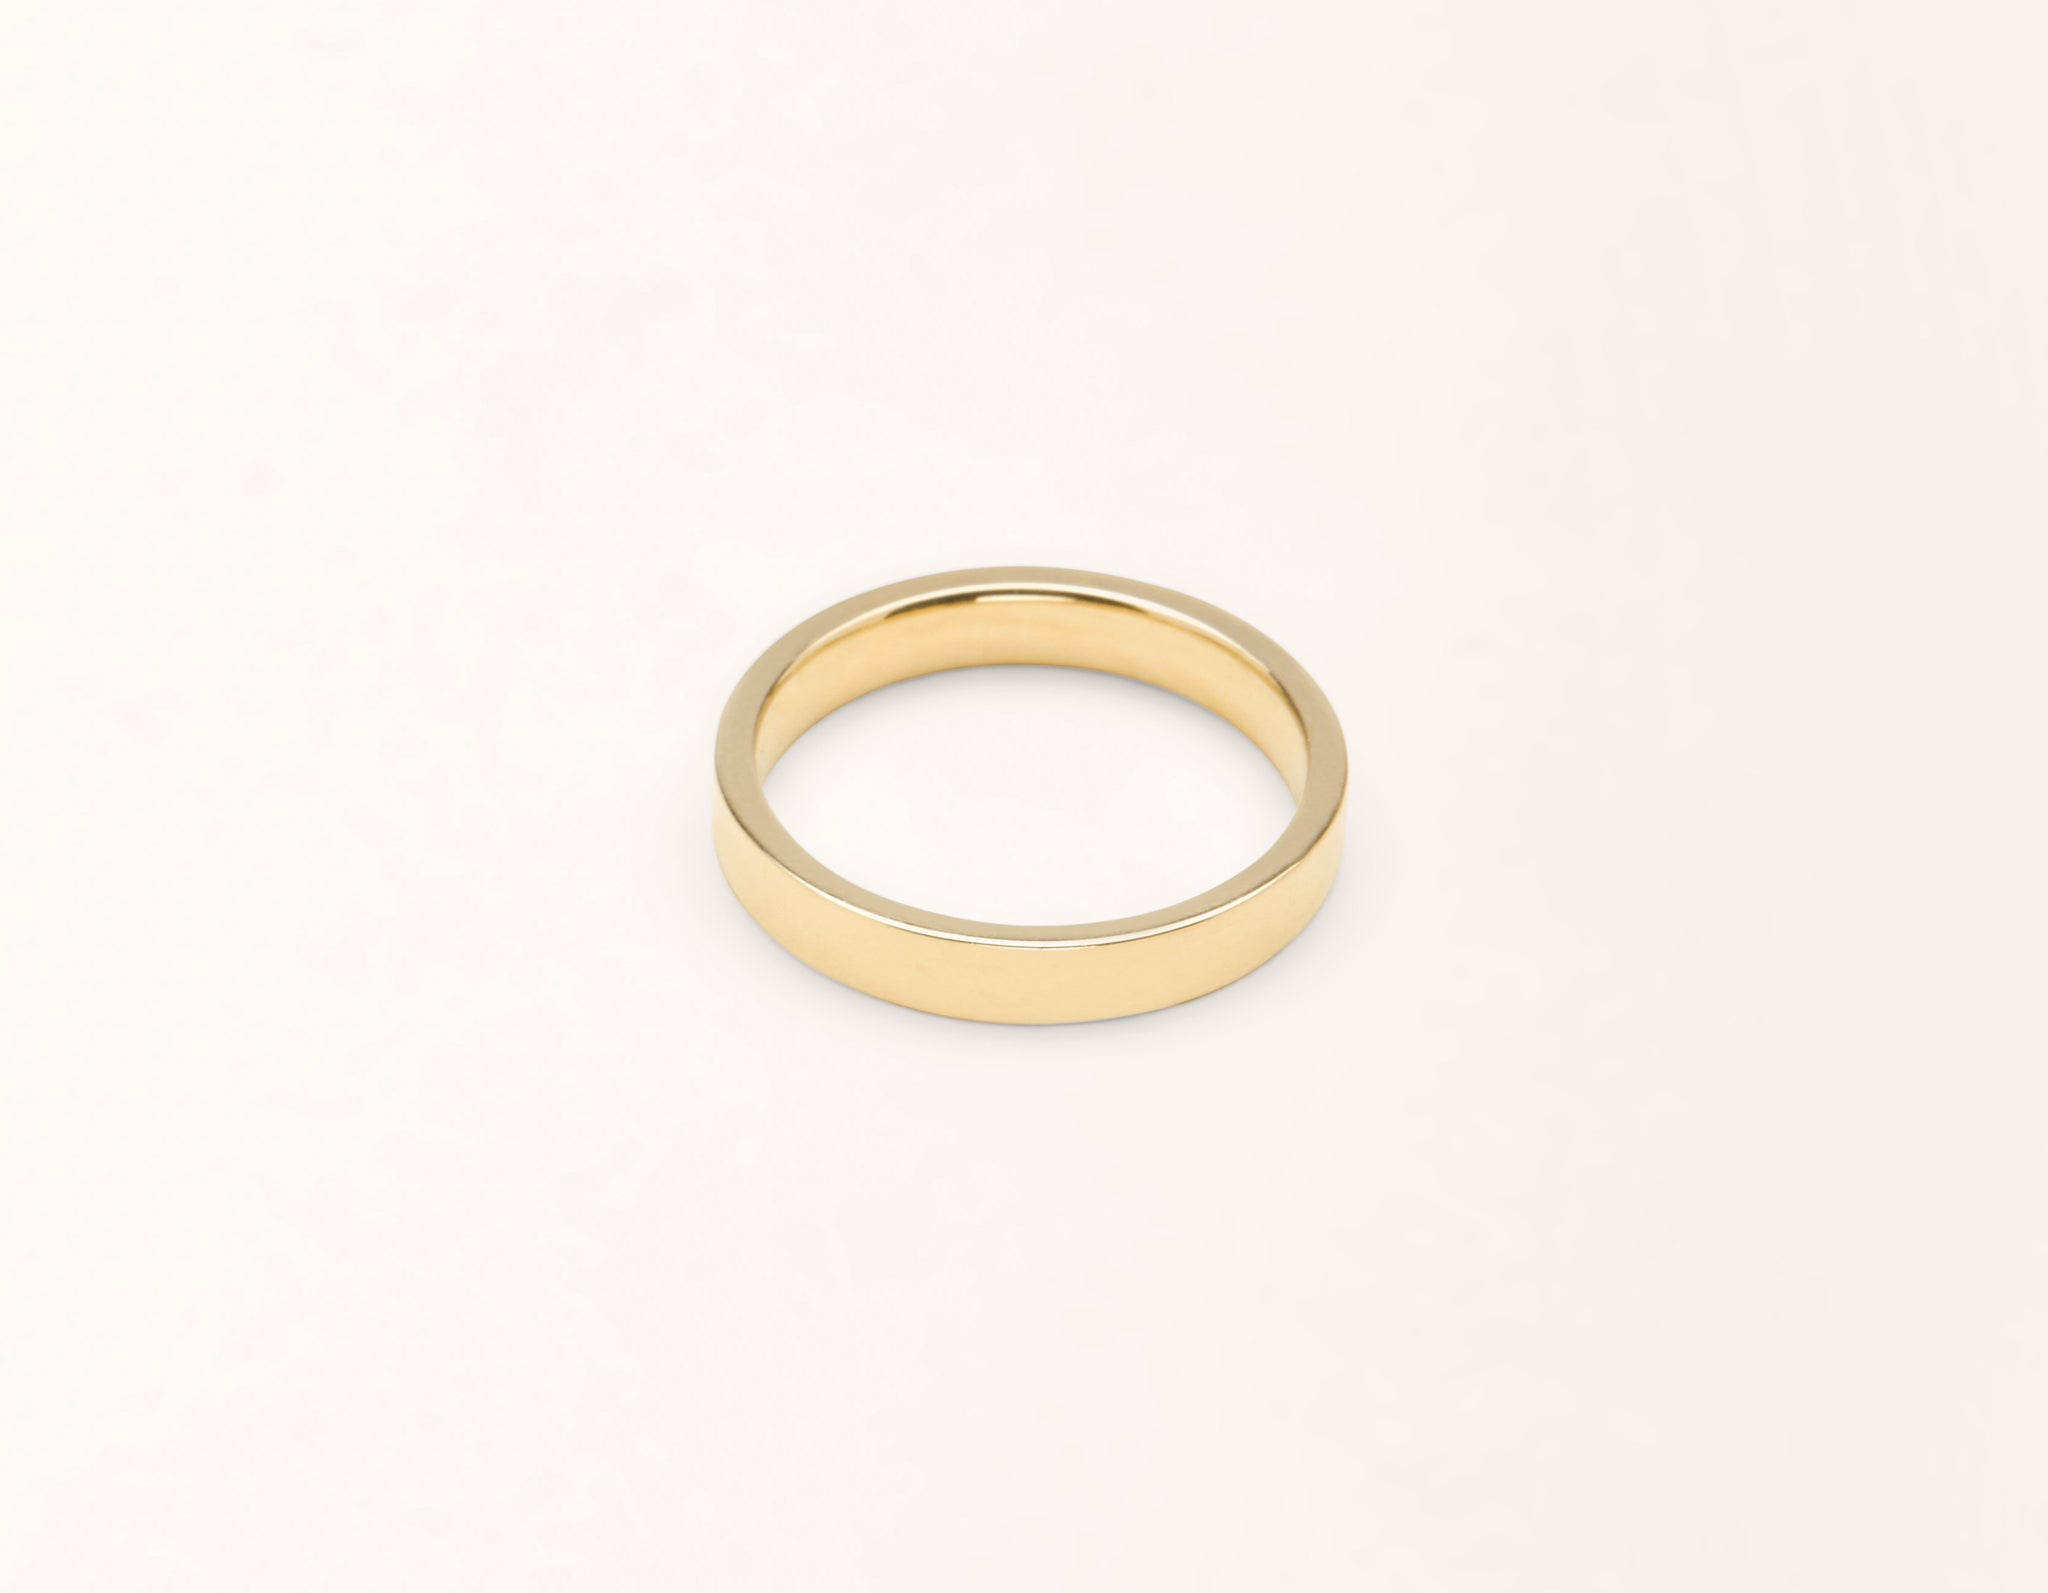 Simple modern 18k solid yellow gold 3 mm Flat men's women's Wedding Band Vrai & Oro